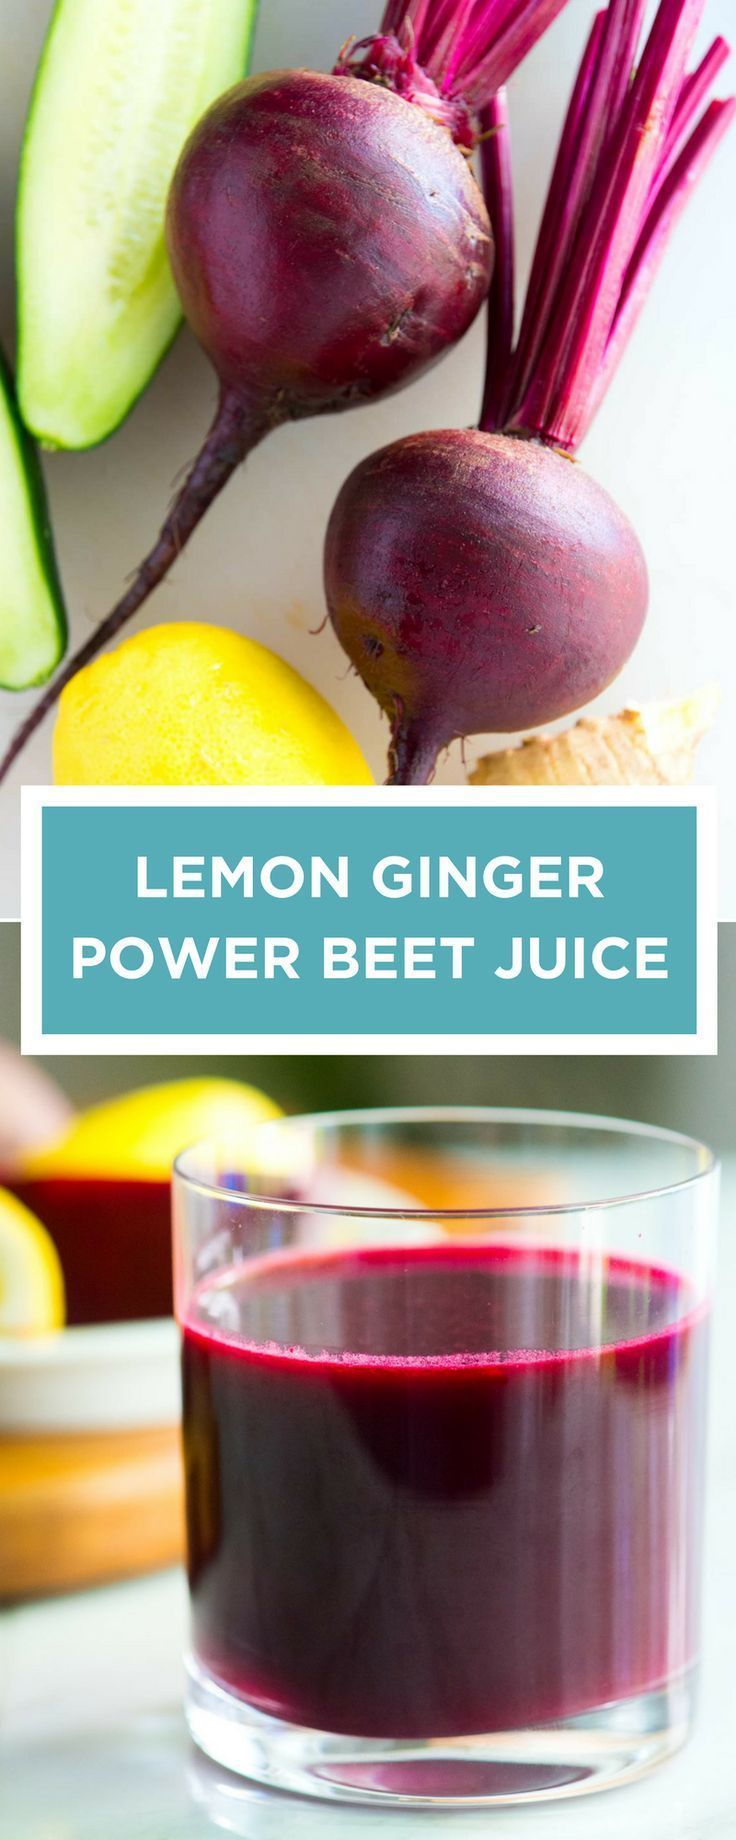 This is one of my favorite beet juice recipes! There are so many great benefits of drinking beet juice. To this recipe, we add beets, cucumber, lemon and ginger. It's naturally sweetened and so delicious!